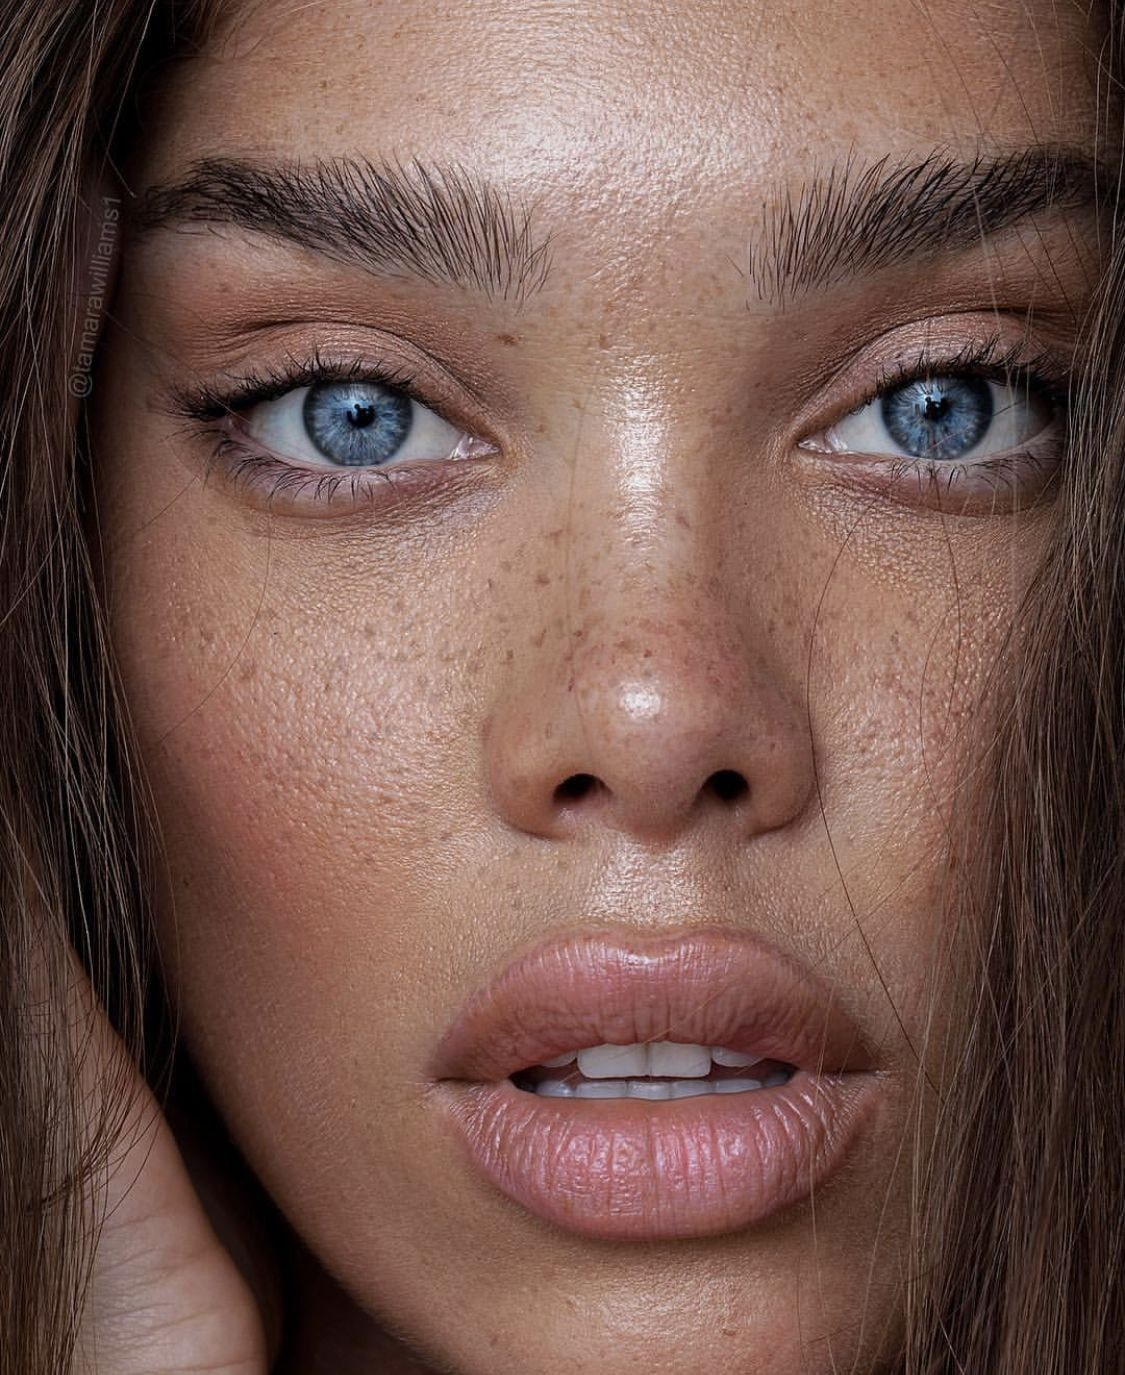 womans face close up, tanned, radiant with blue eyes.